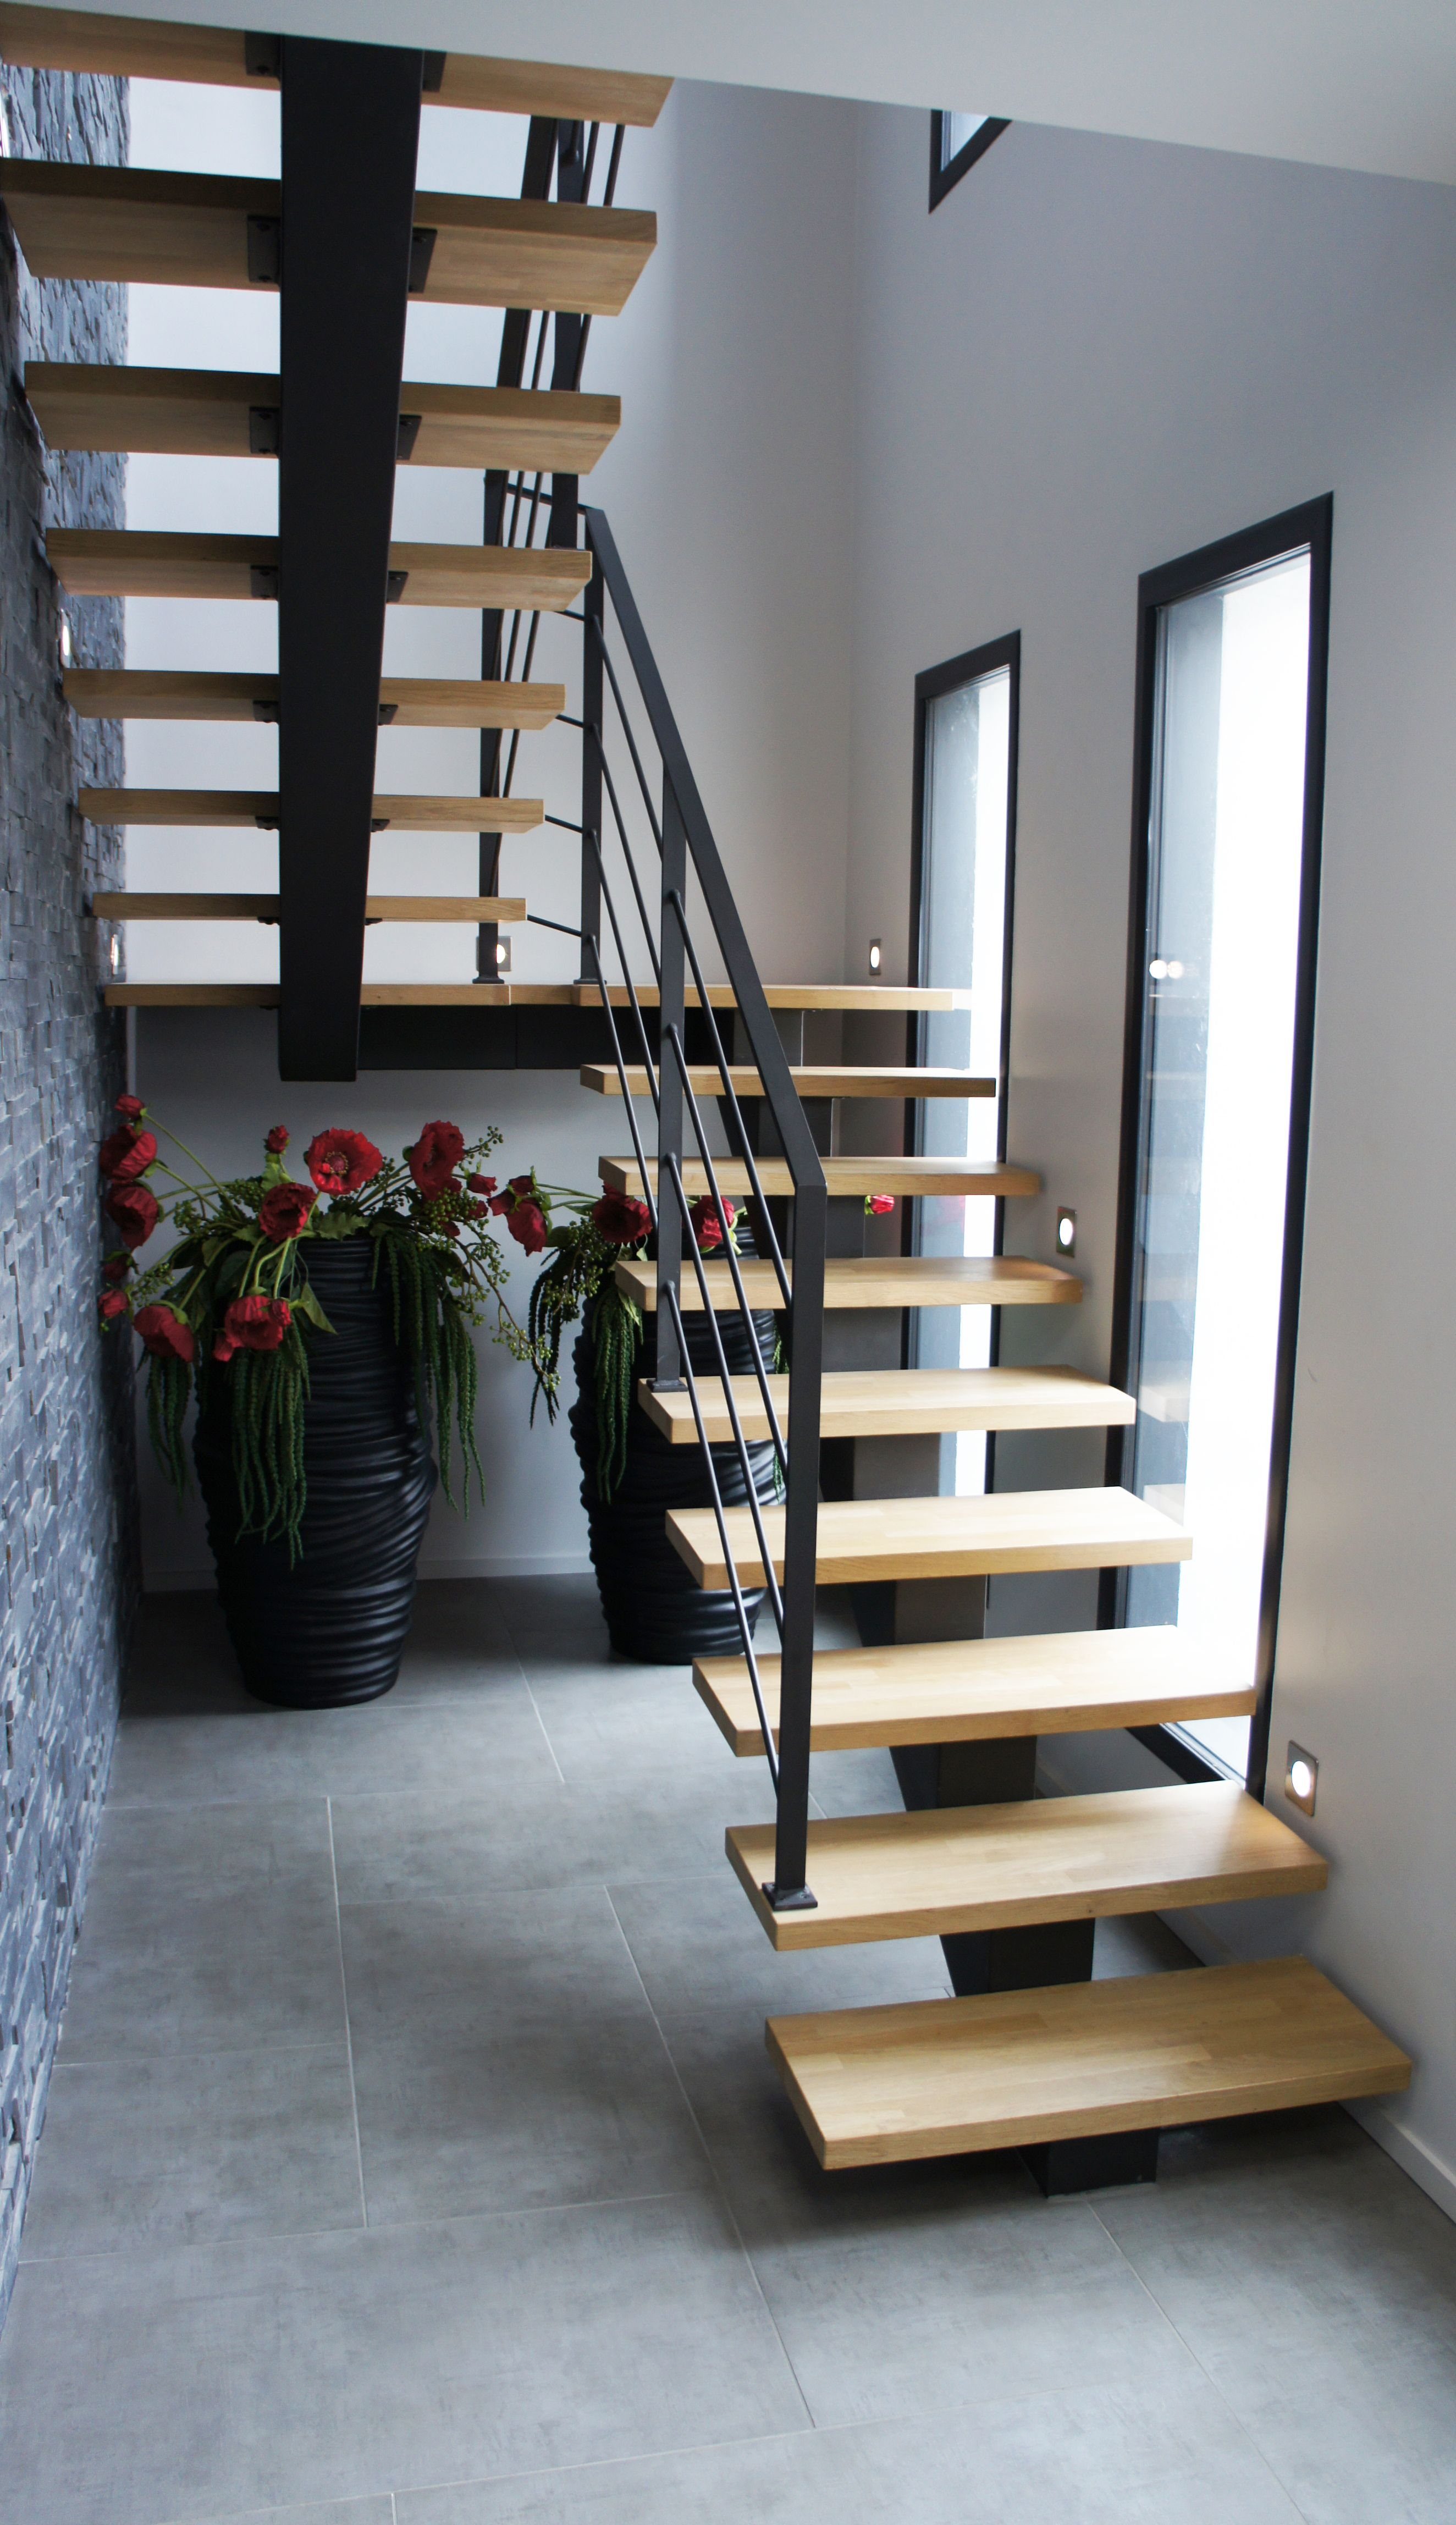 escalier 2 4 tournant avec limon central et marches en ch ne brescia vient s 39 installer dans ce. Black Bedroom Furniture Sets. Home Design Ideas